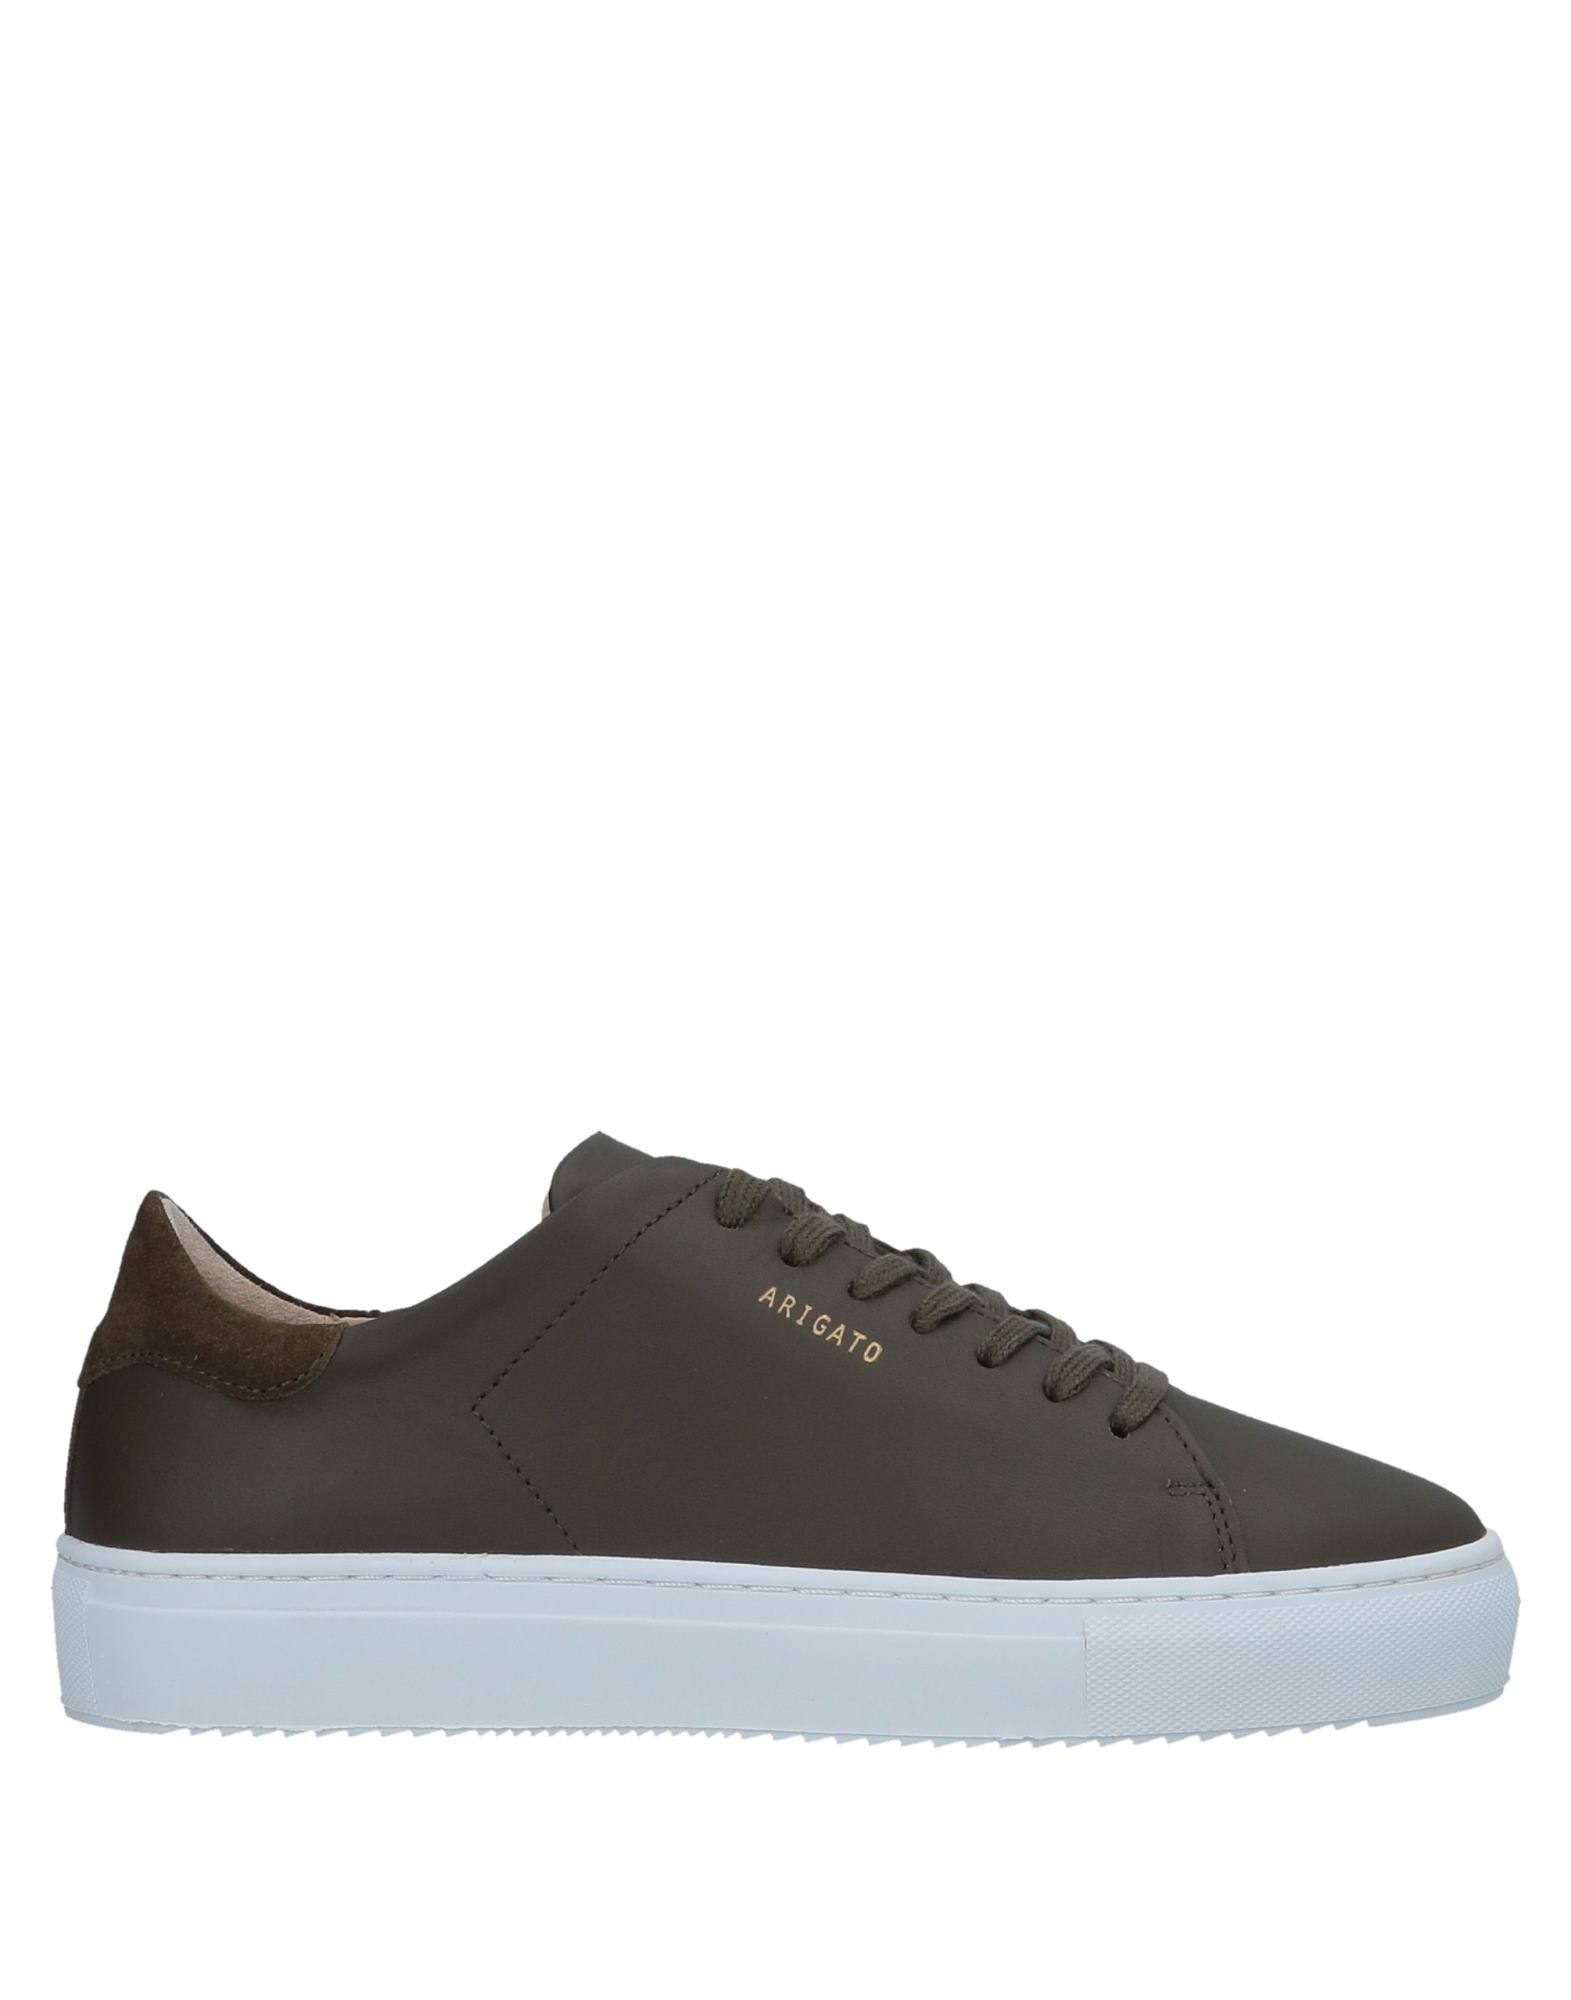 Axel Arigato Sneakers - Women Axel Arigato Sneakers online on 11536407RS  United Kingdom - 11536407RS on 744fe8